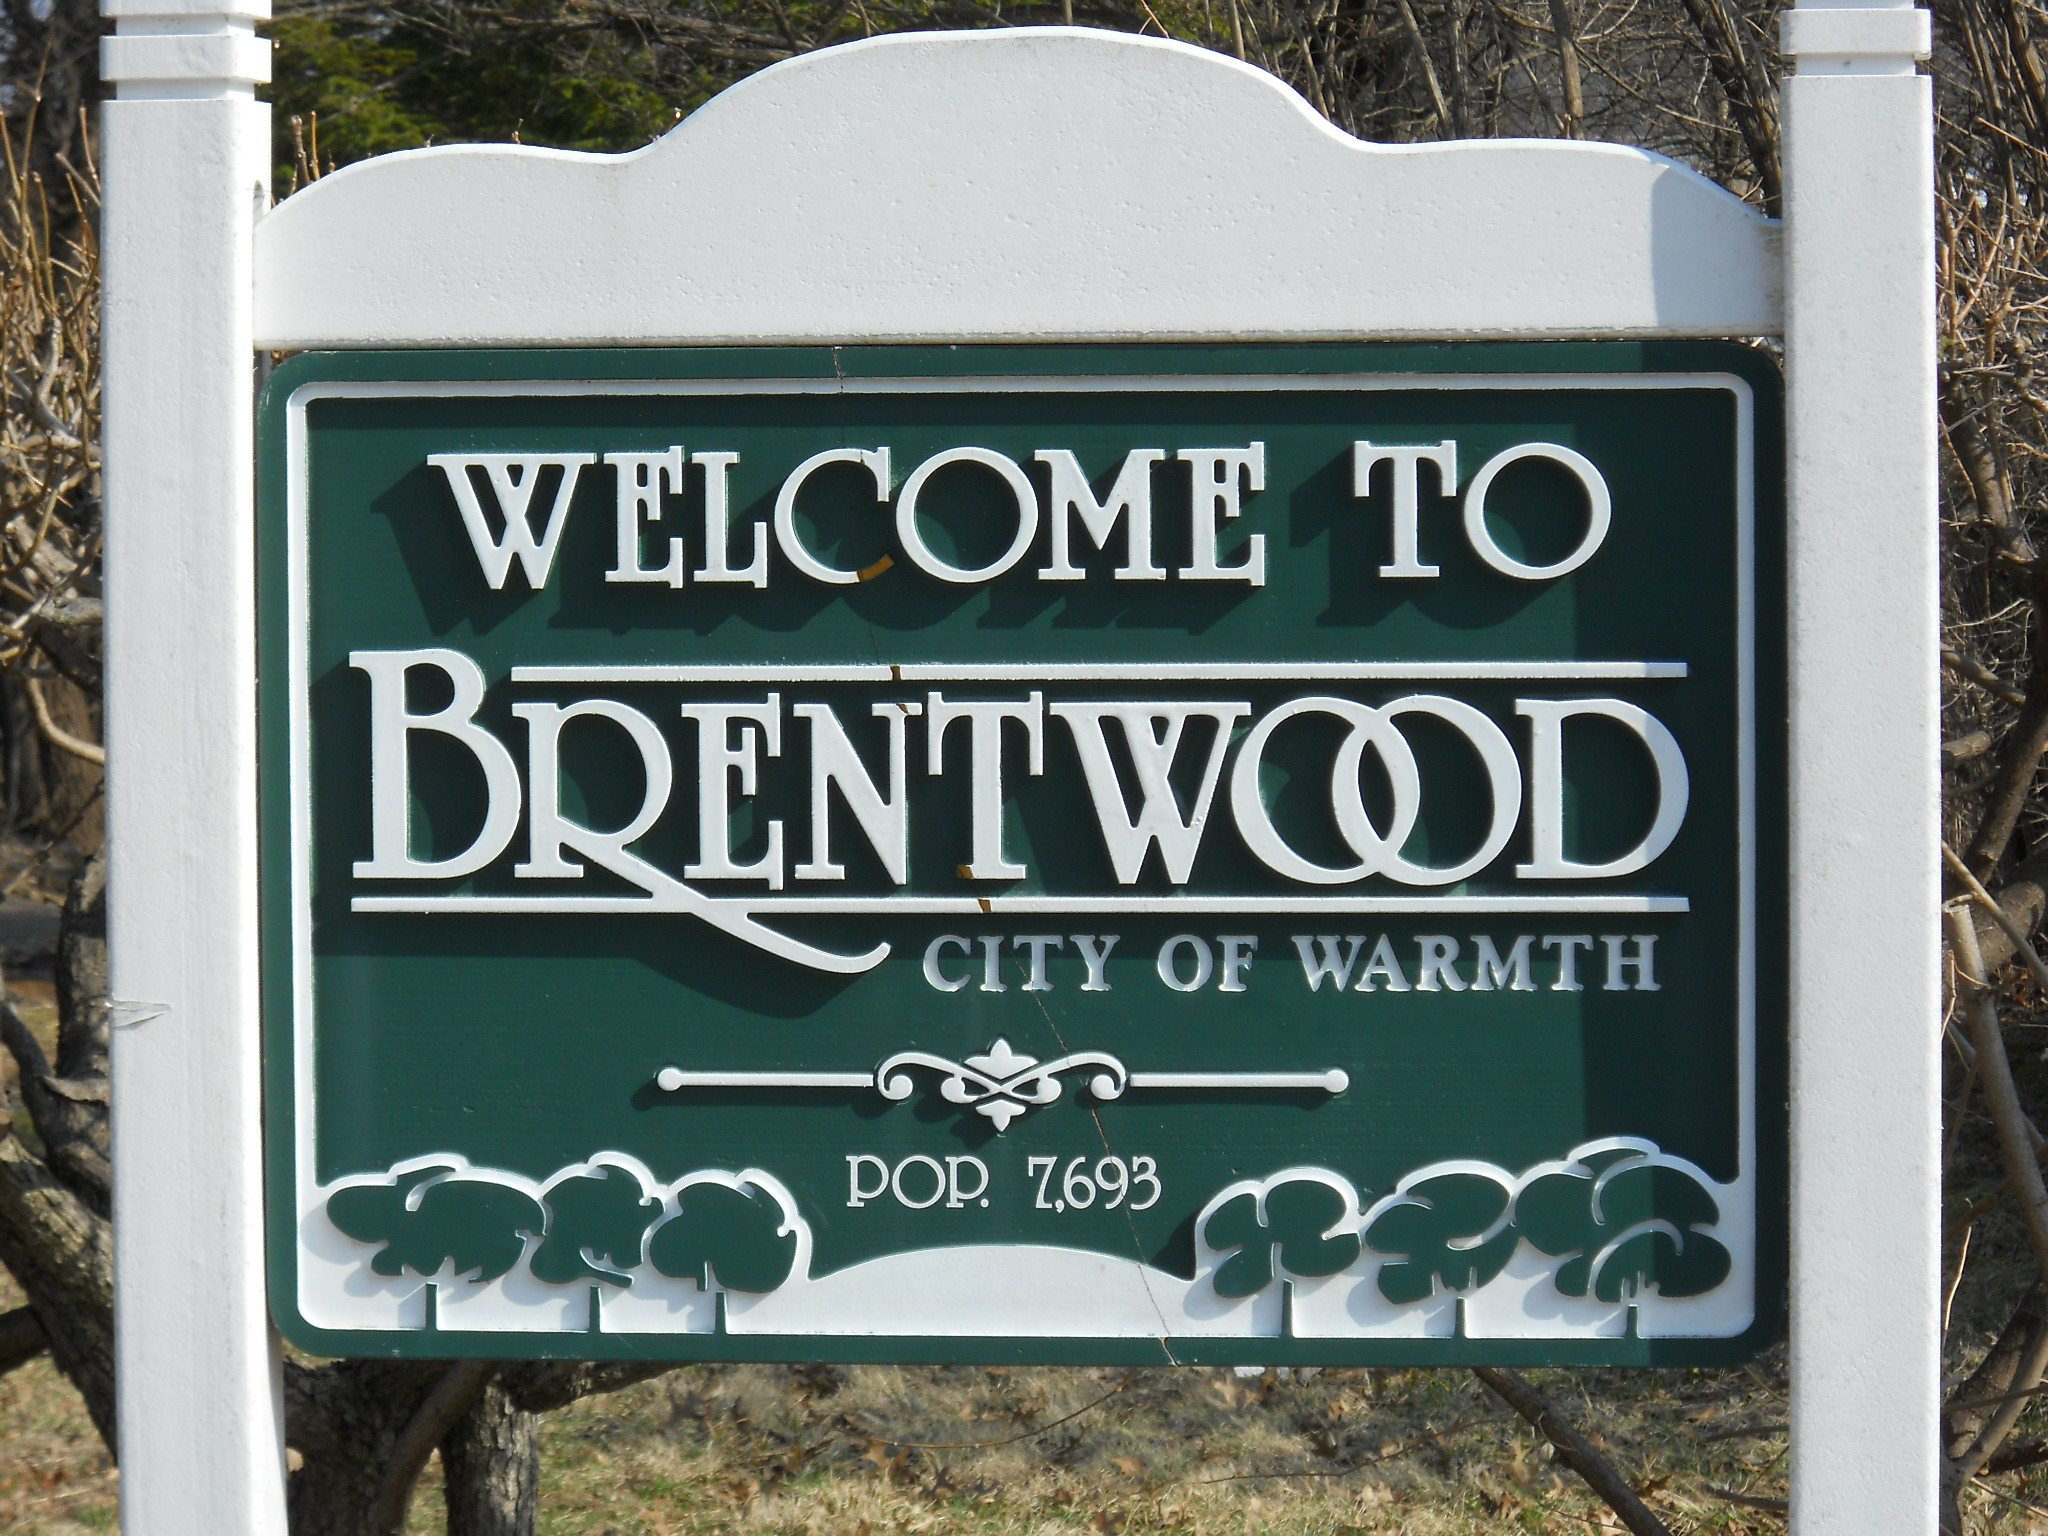 St. Louis Community Spotlight: Brentwood, MO